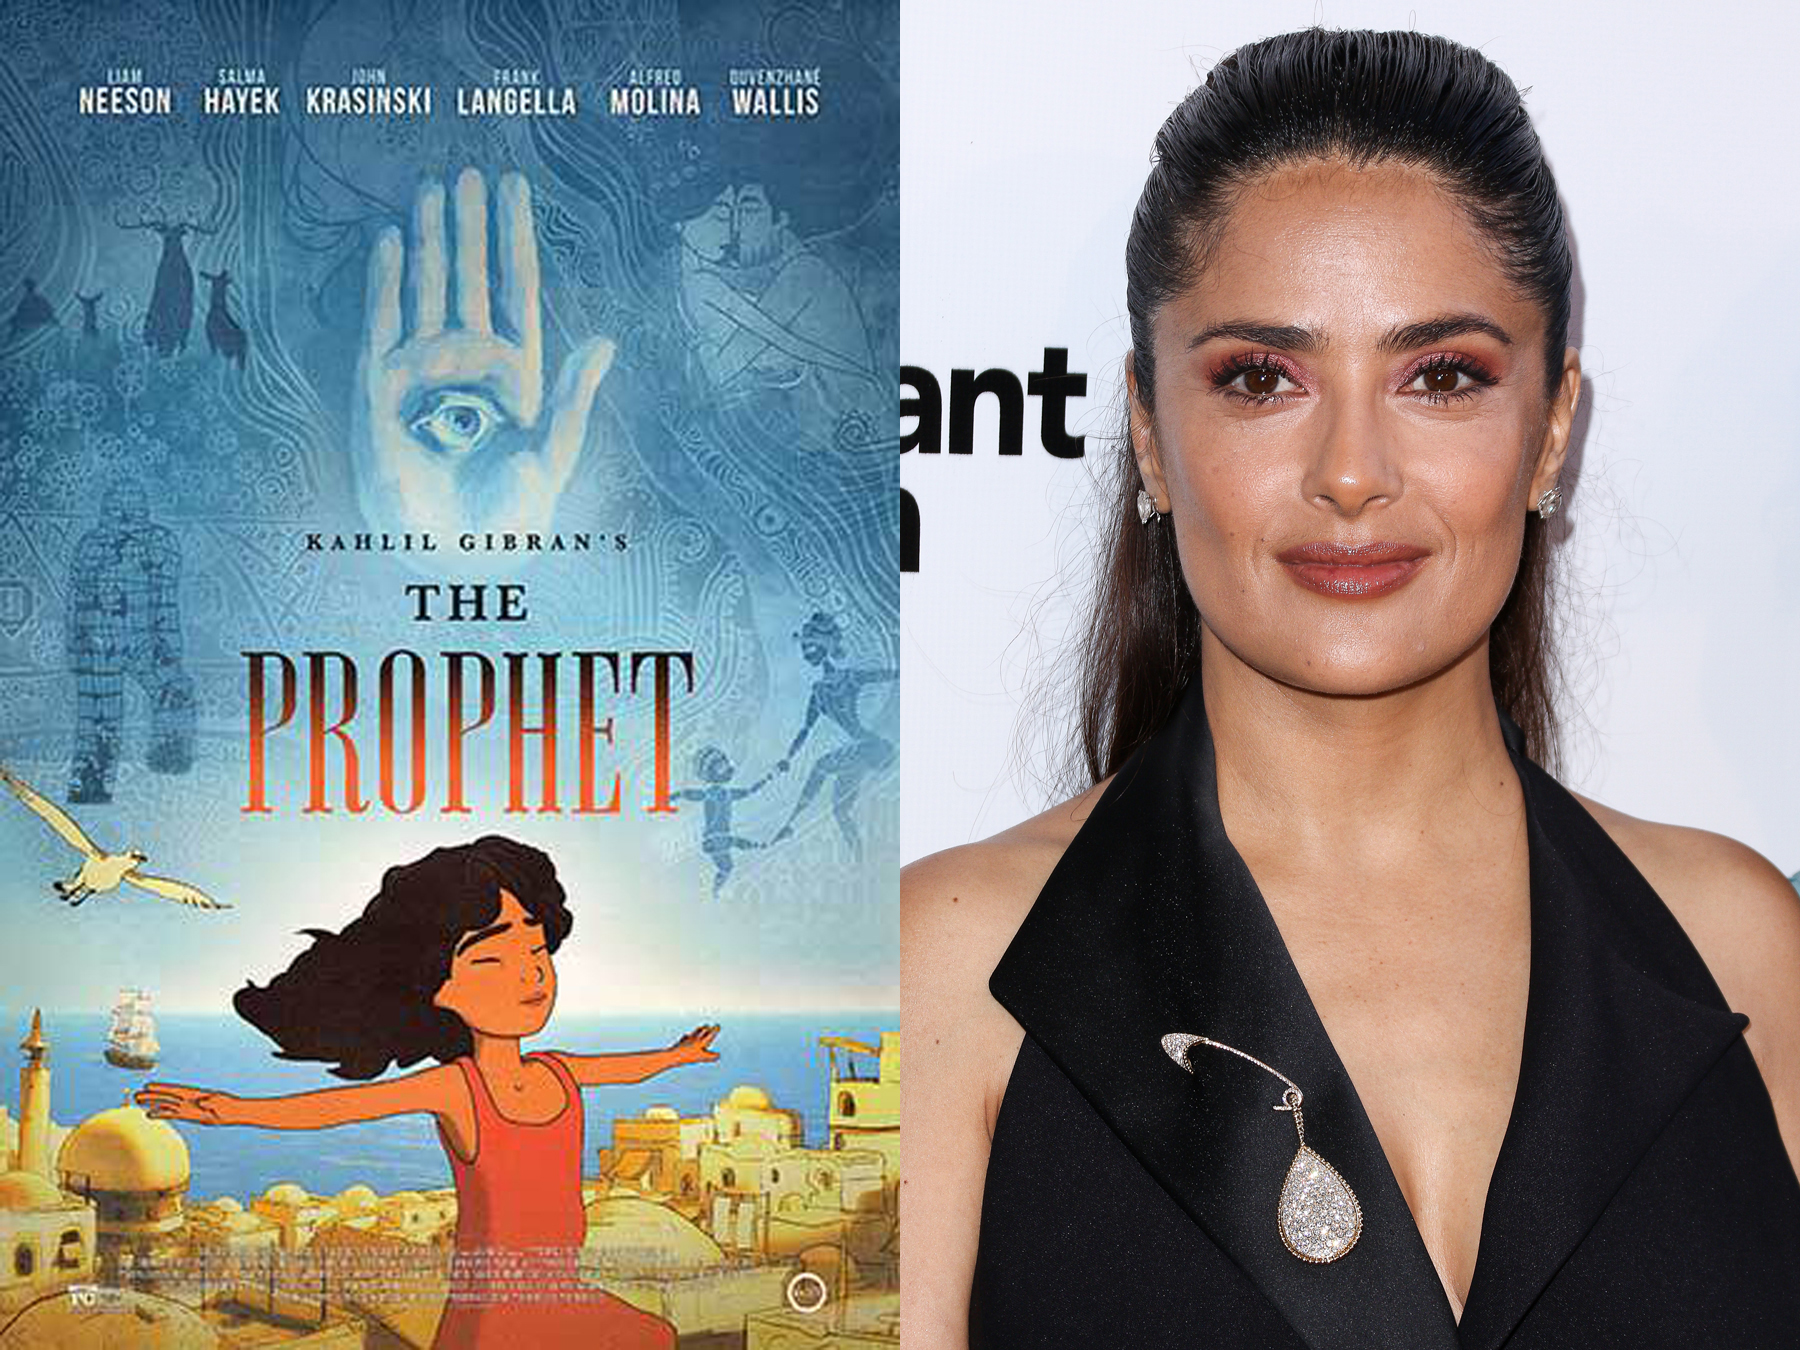 Salma Hayek Pinault attends the LA Special Screening of  Kahlil Gibran's The Prophet  held at LACMA's Bing Theatre on July 29, 2015, in Los Angeles.